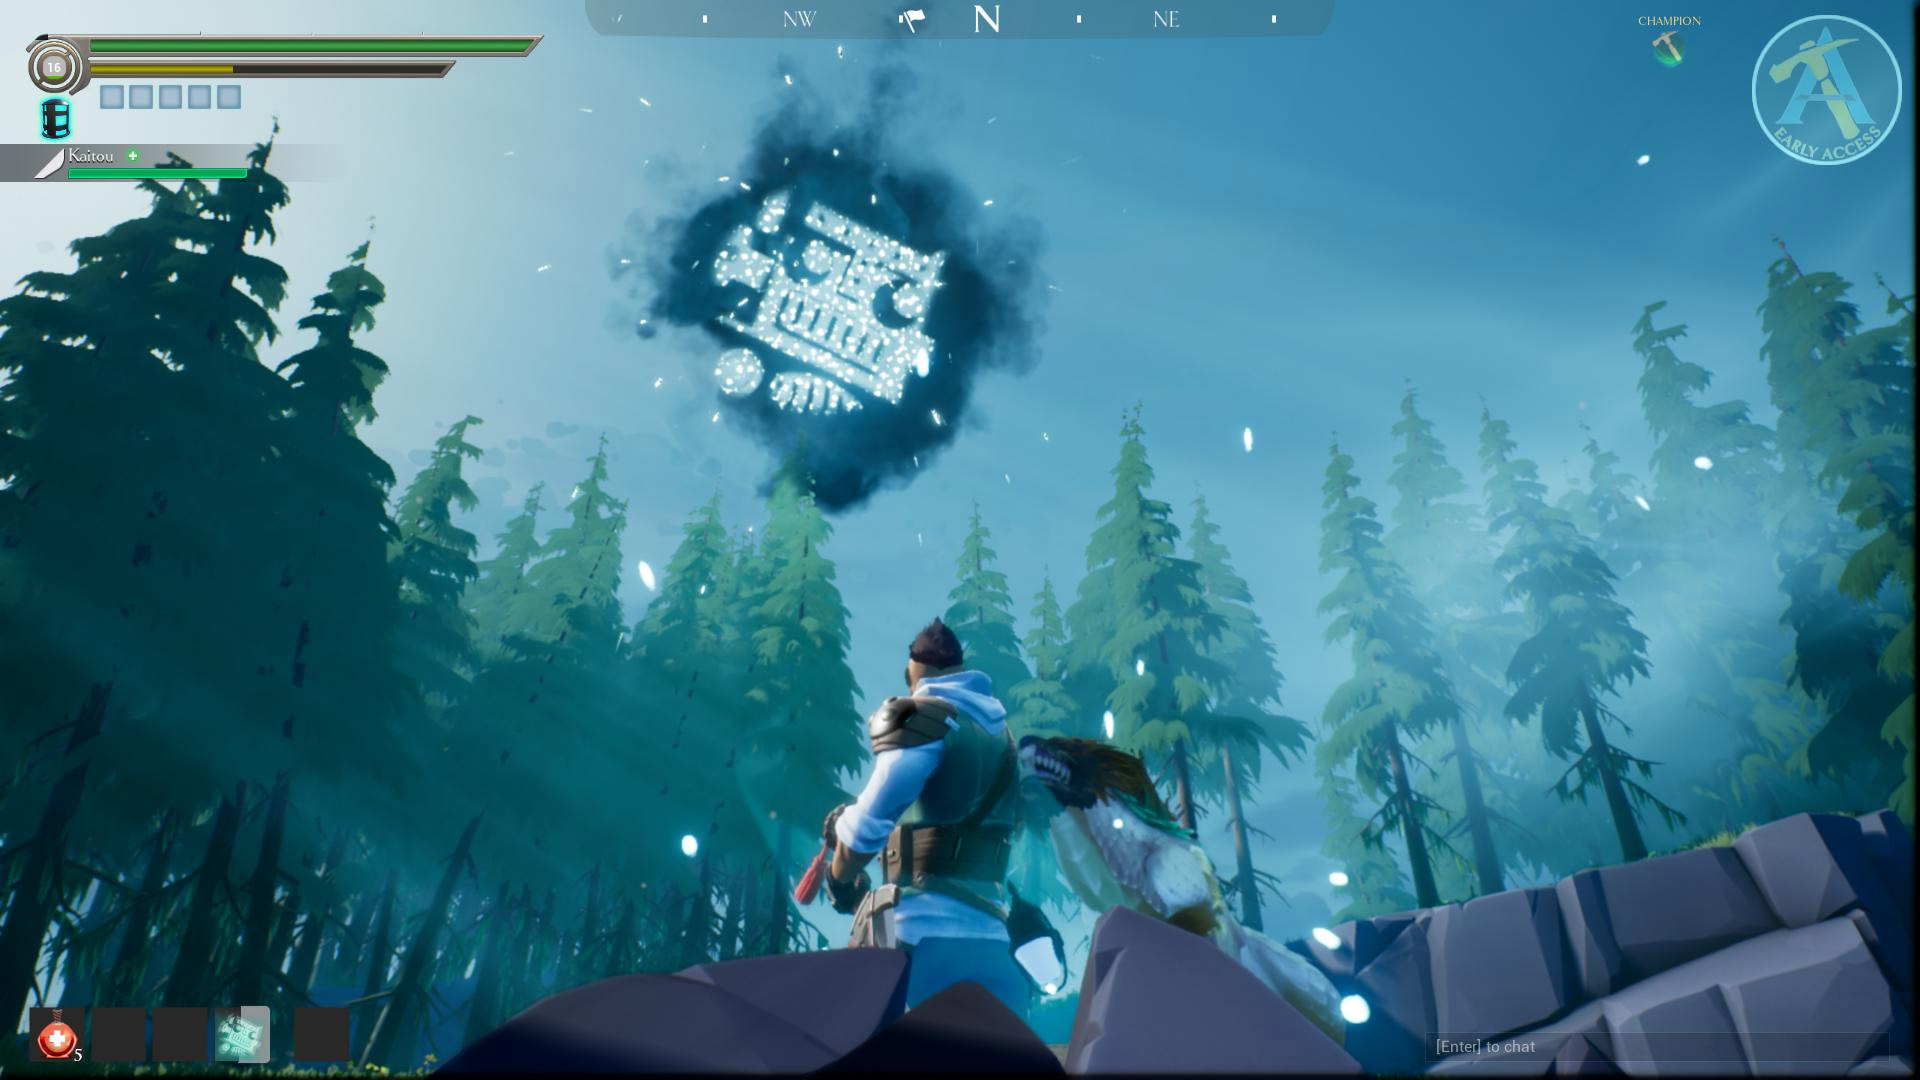 Monster Hunter-esque Dauntless is coming to Switch, Xbox One, PS4 and mobile next year screenshot